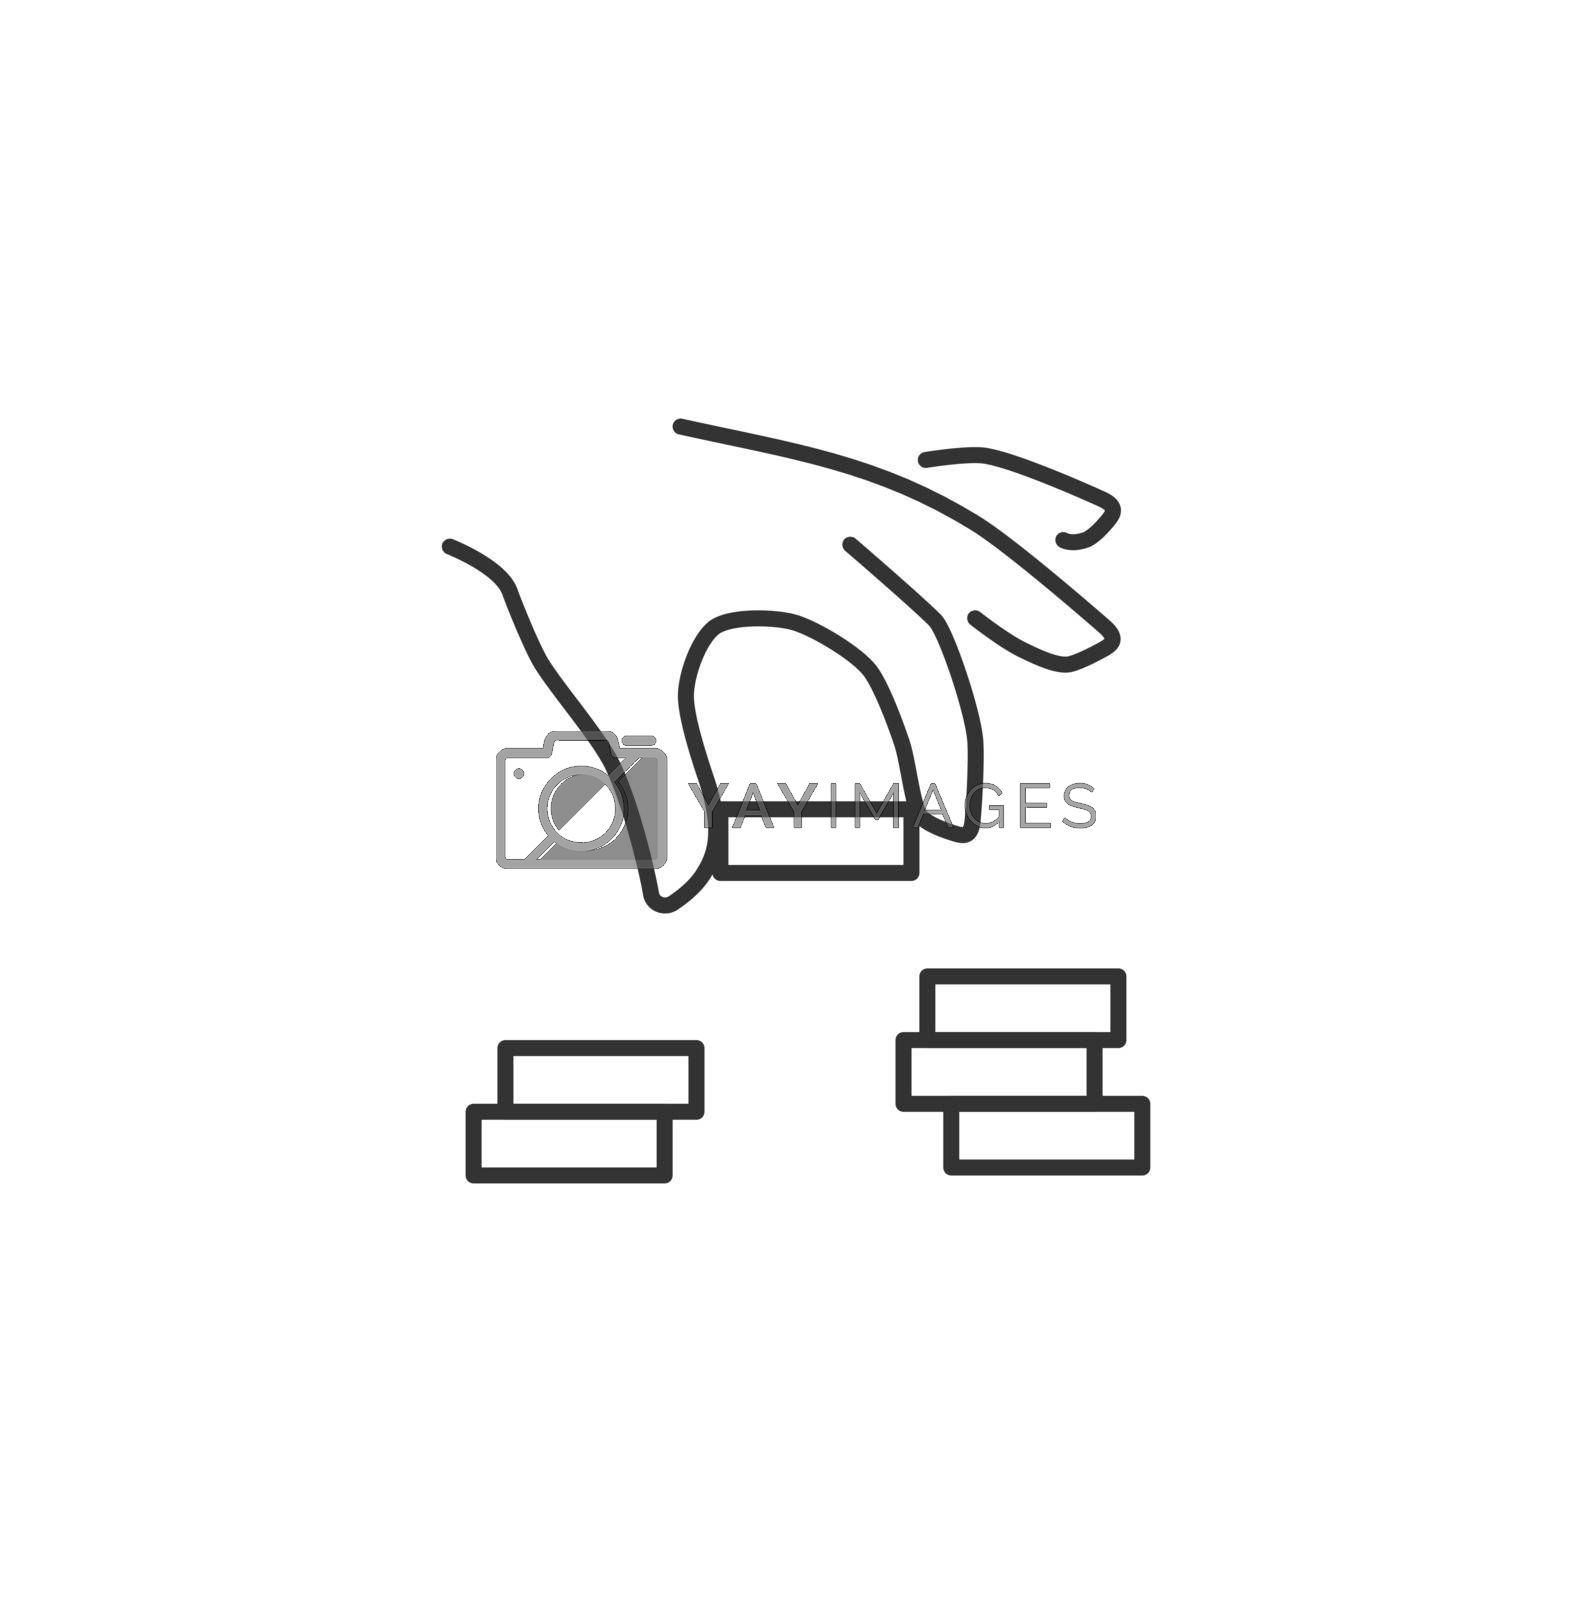 Hand Puts a Coin in a Coins Stack Related Vector Line Icon. Sign Isolated on the White Background. Editable Stroke EPS file. Vector illustration.